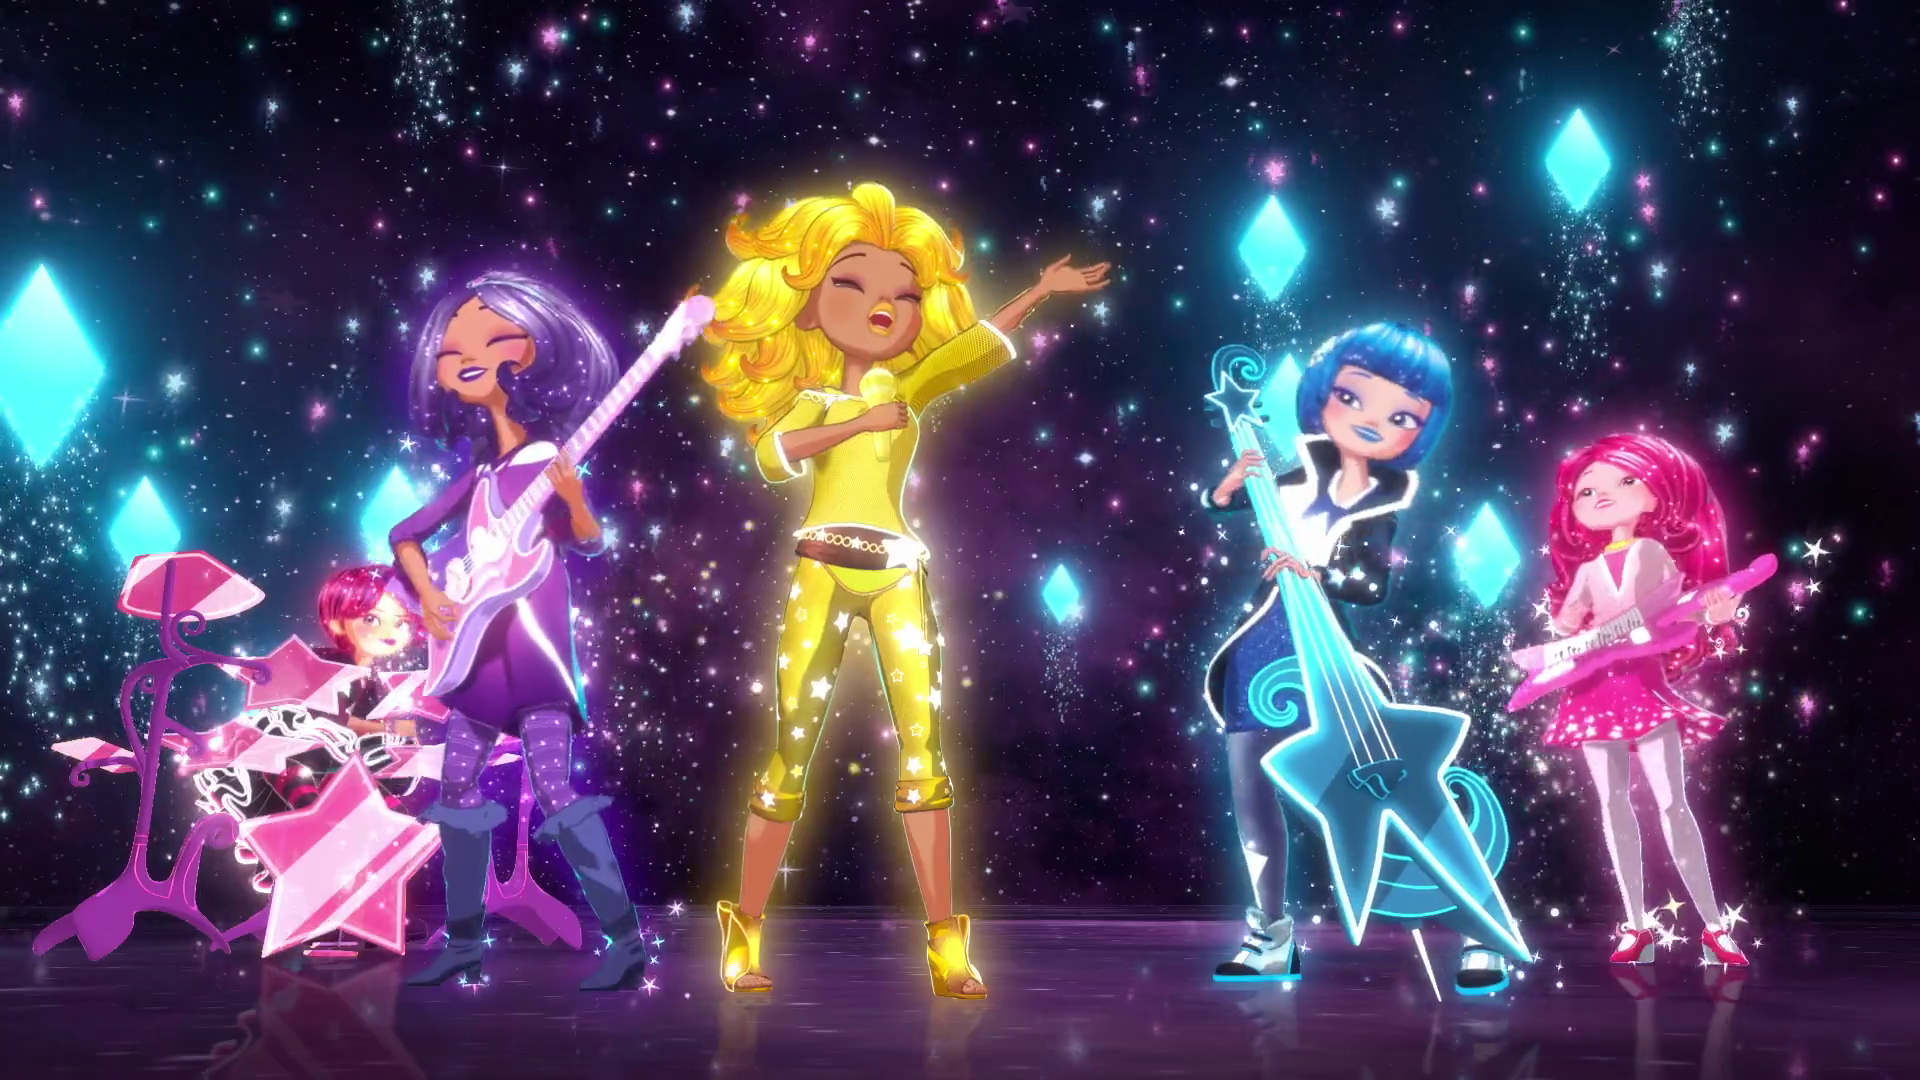 Wish Now by Star Darlings